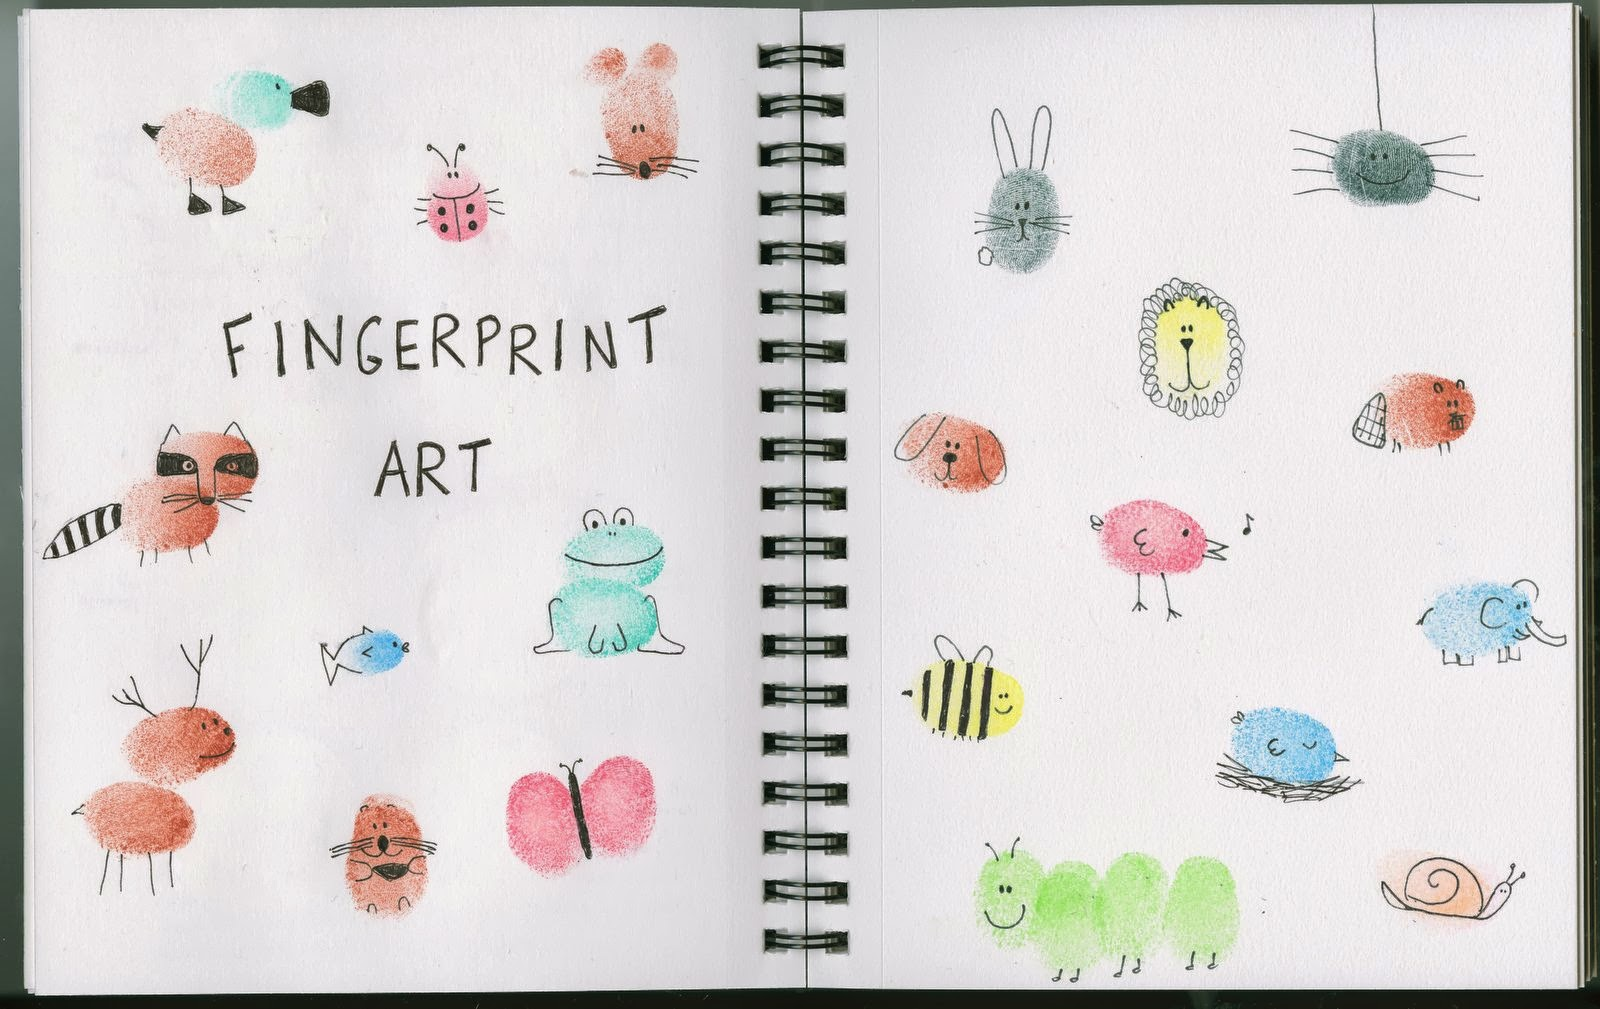 Christmas art and craft ideas thumbprint - Even Though We Ve Done Fingerprint Art Dozens Of Times Before It S